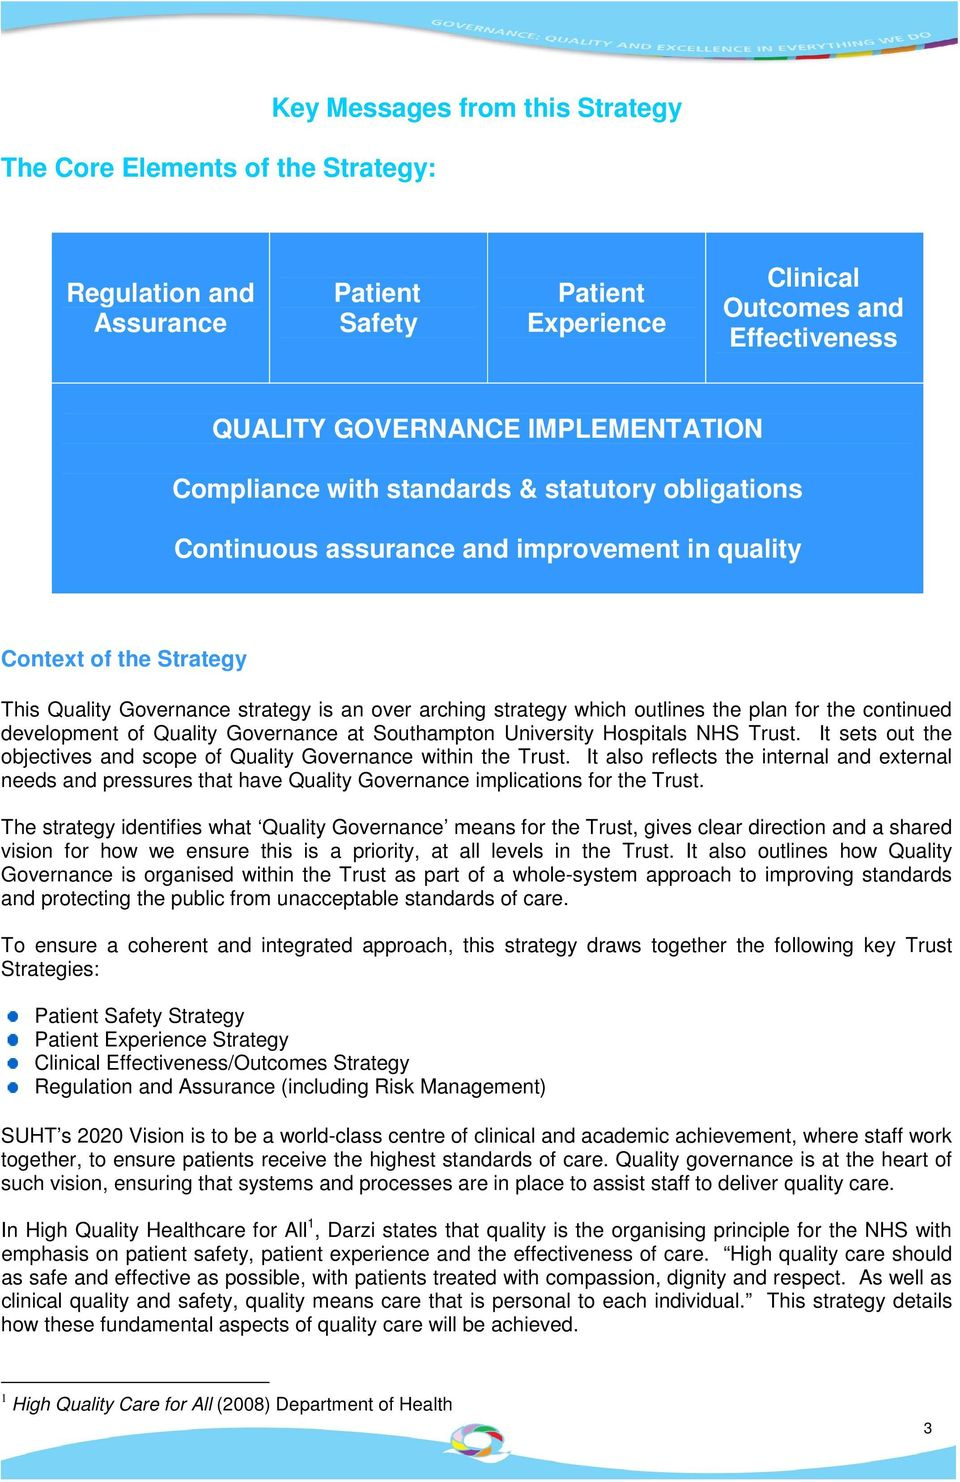 the plan for the continued development of Quality Governance at Southampton University Hospitals NHS Trust. It sets out the objectives and scope of Quality Governance within the Trust.